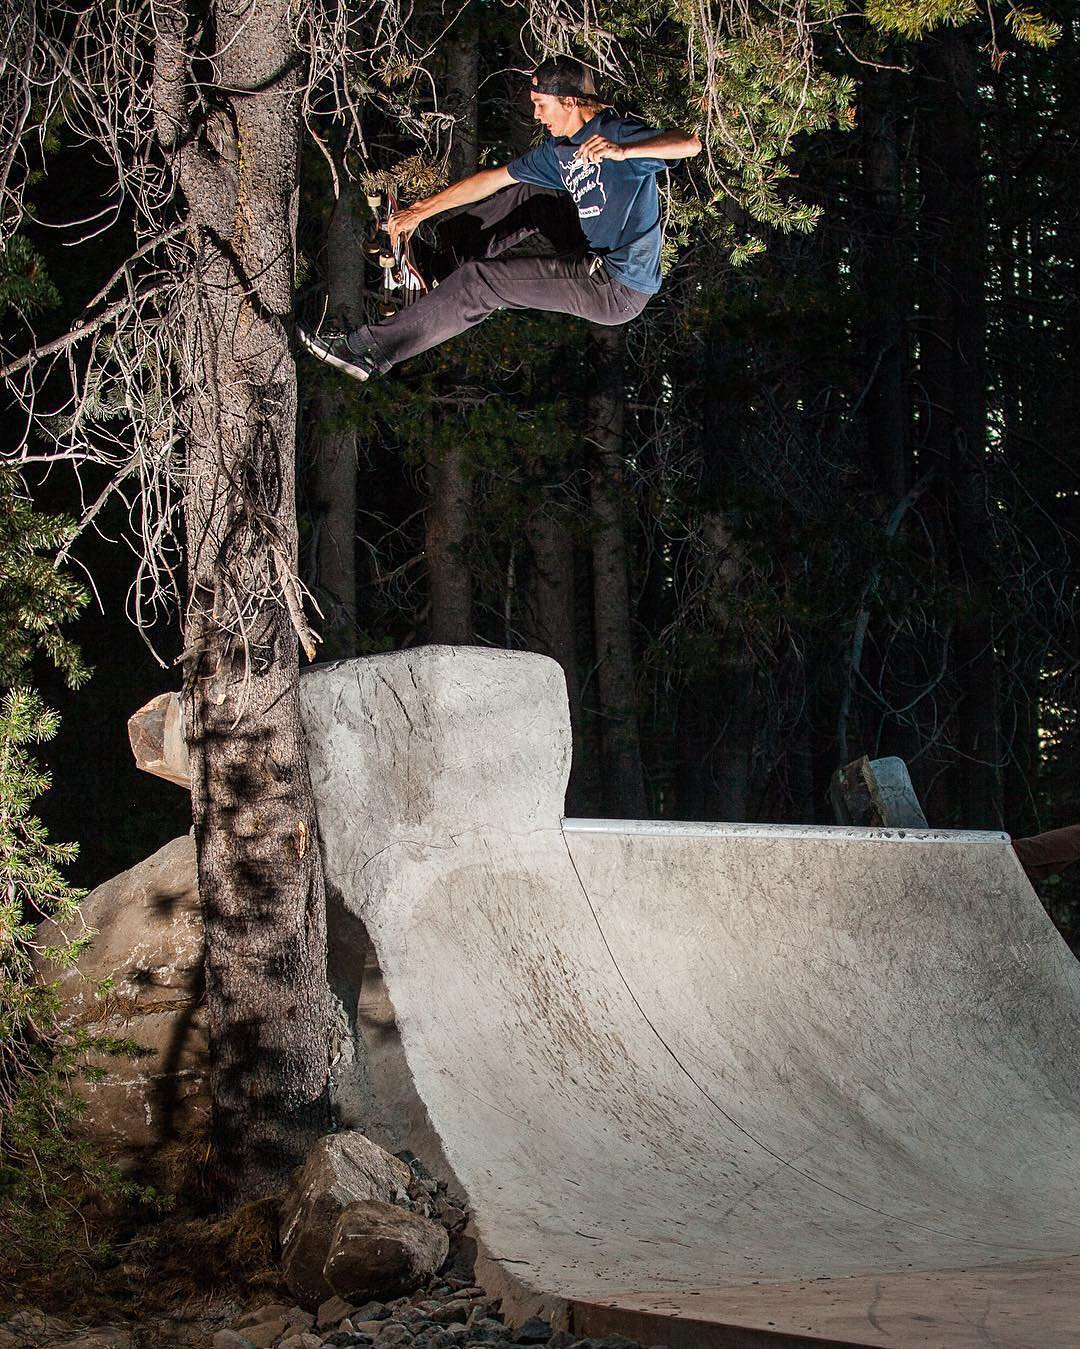 Crazy boneless to footplant from @jworthit @woodwardtahoe #academy530crew